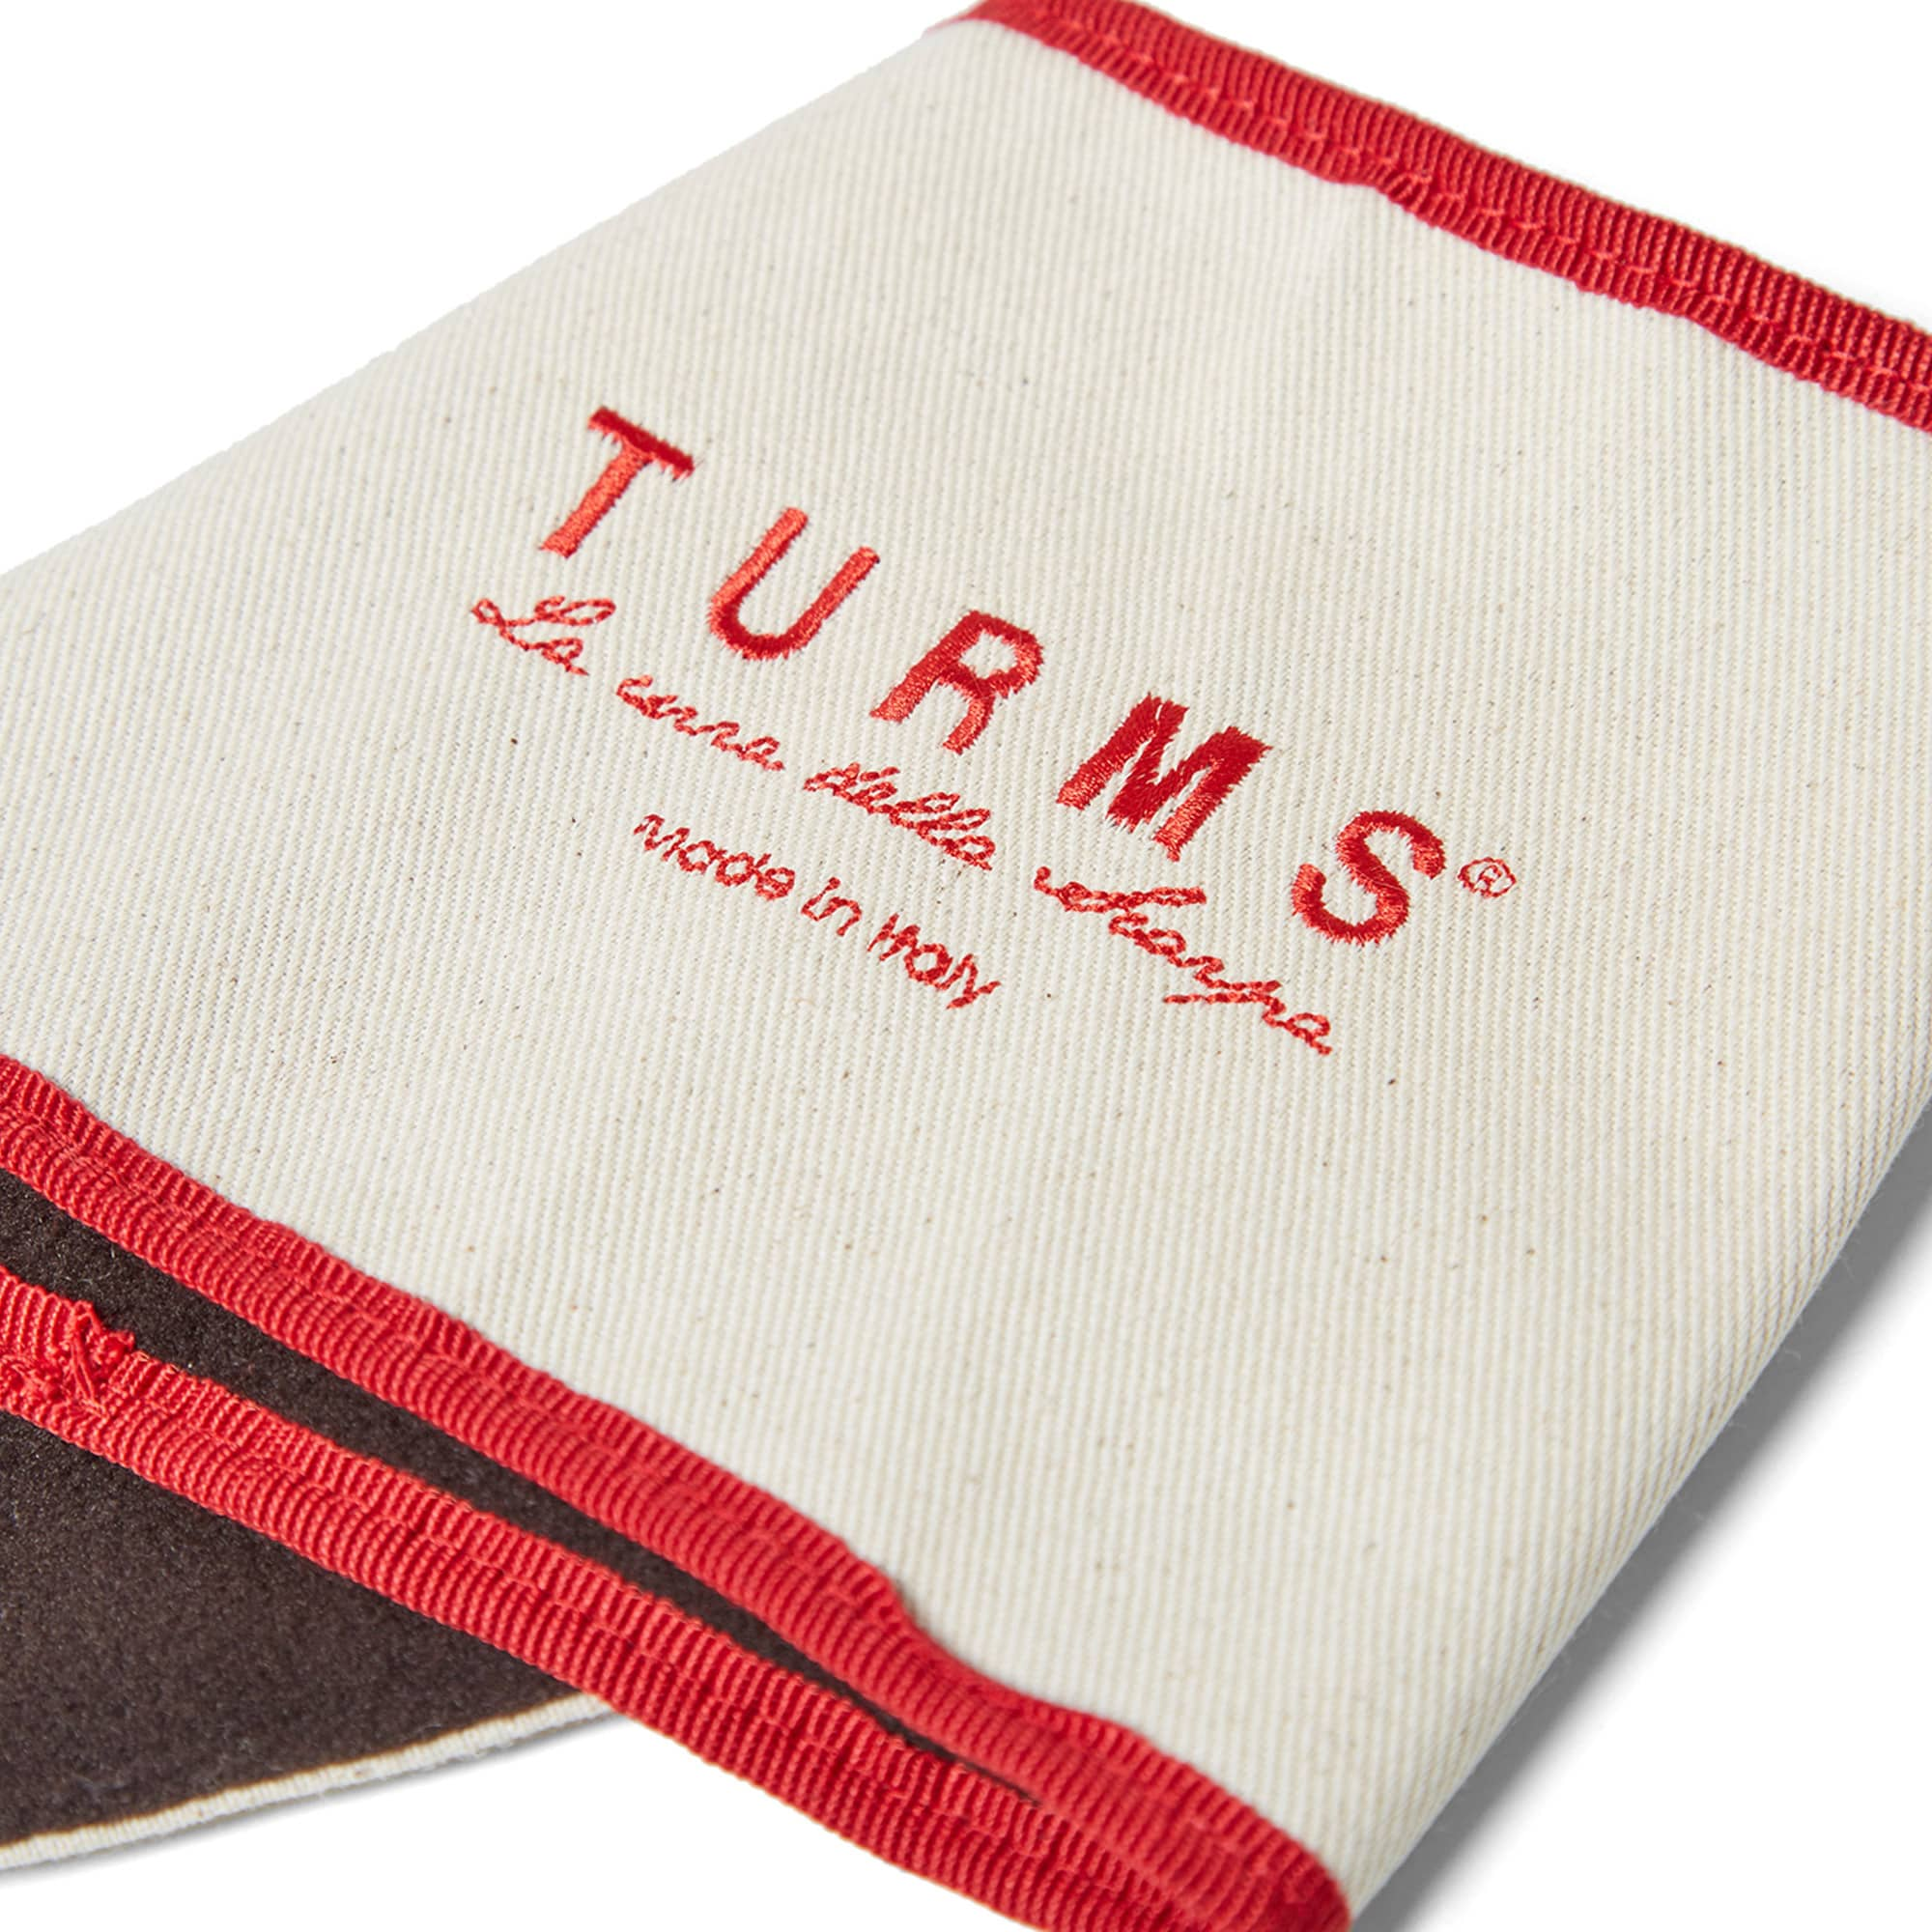 TURMS Hand Stitched College Care Kit - Red